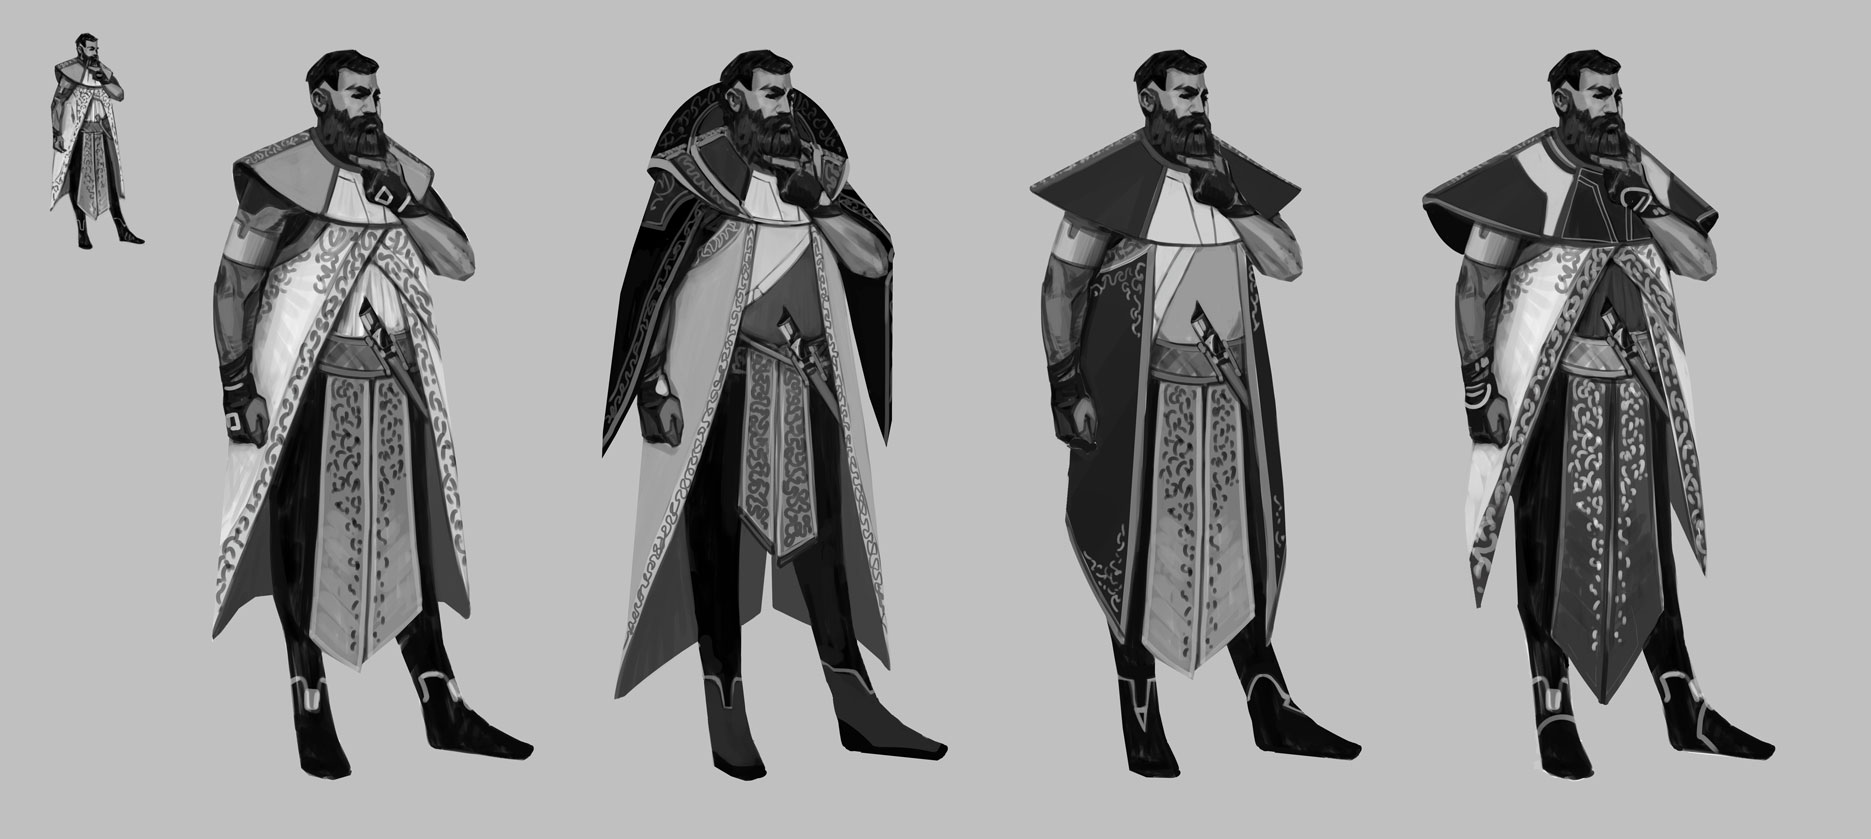 j_strohl_Character5_Iterations